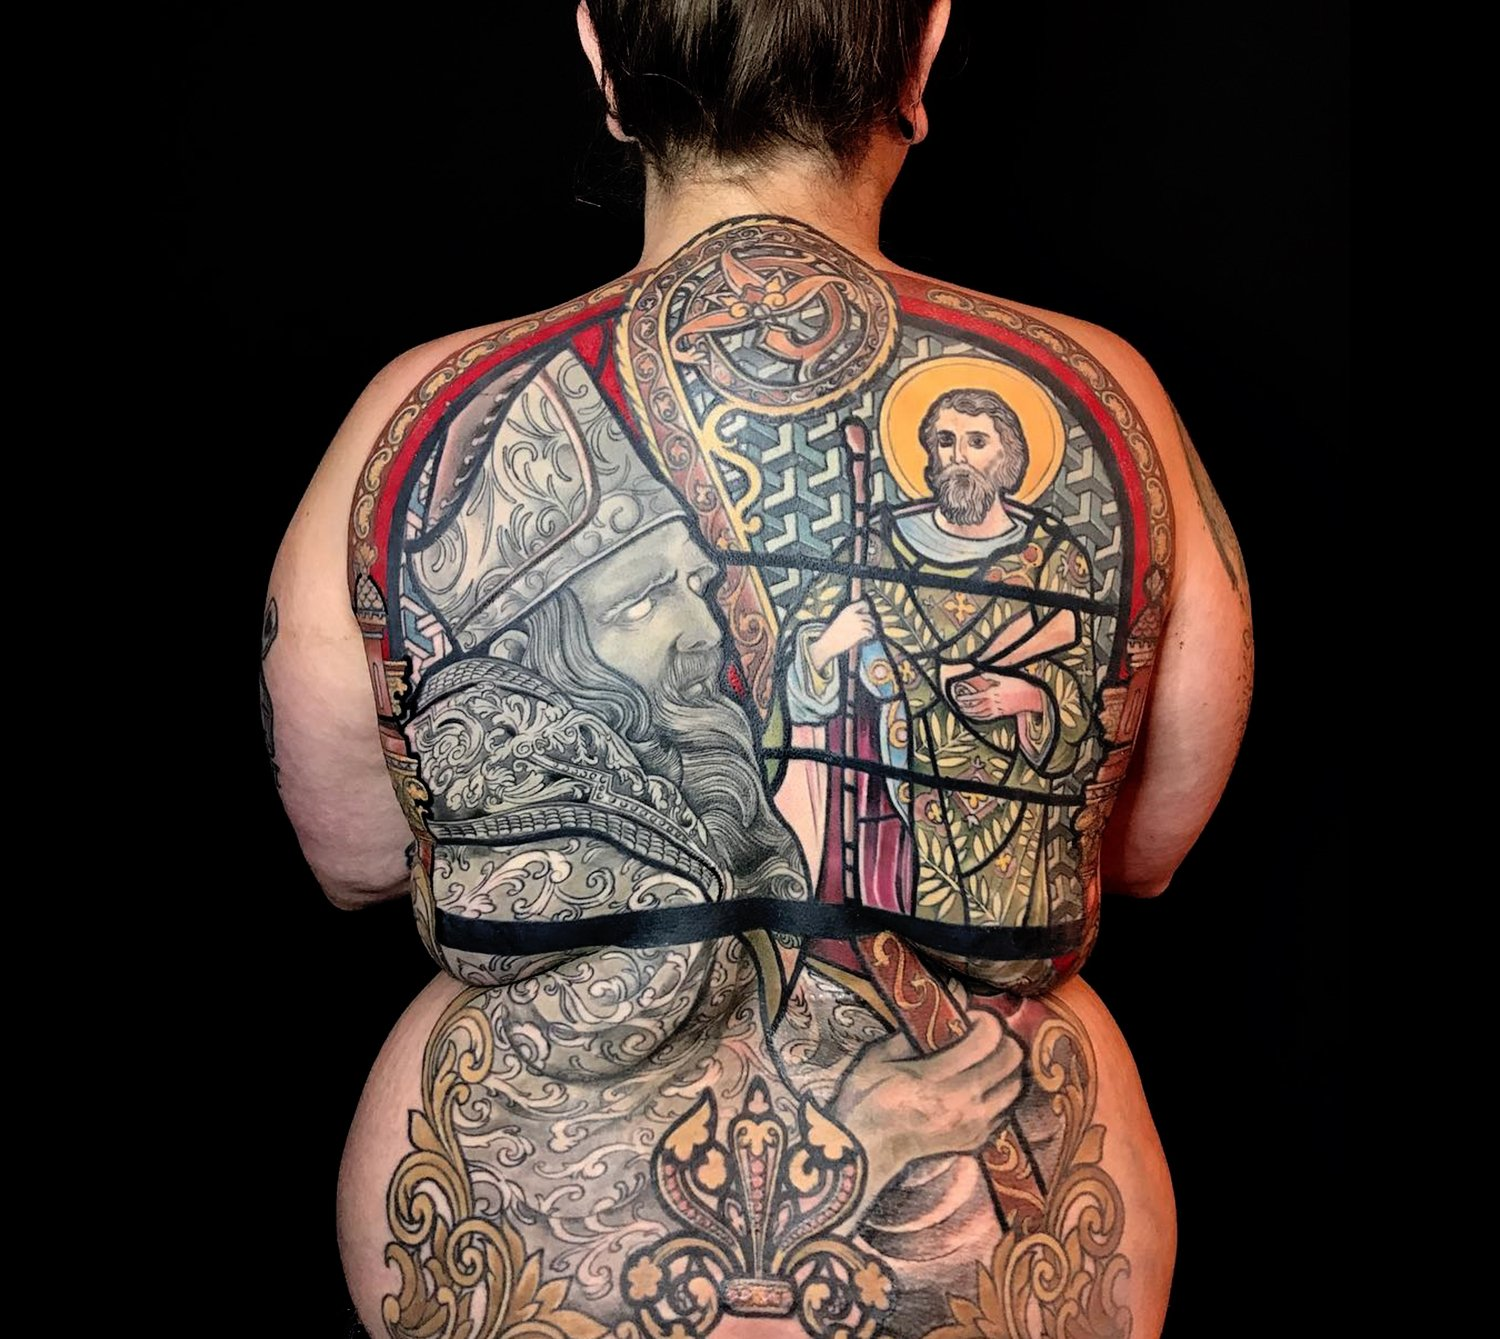 religious piece, stainless glass tattoo on back